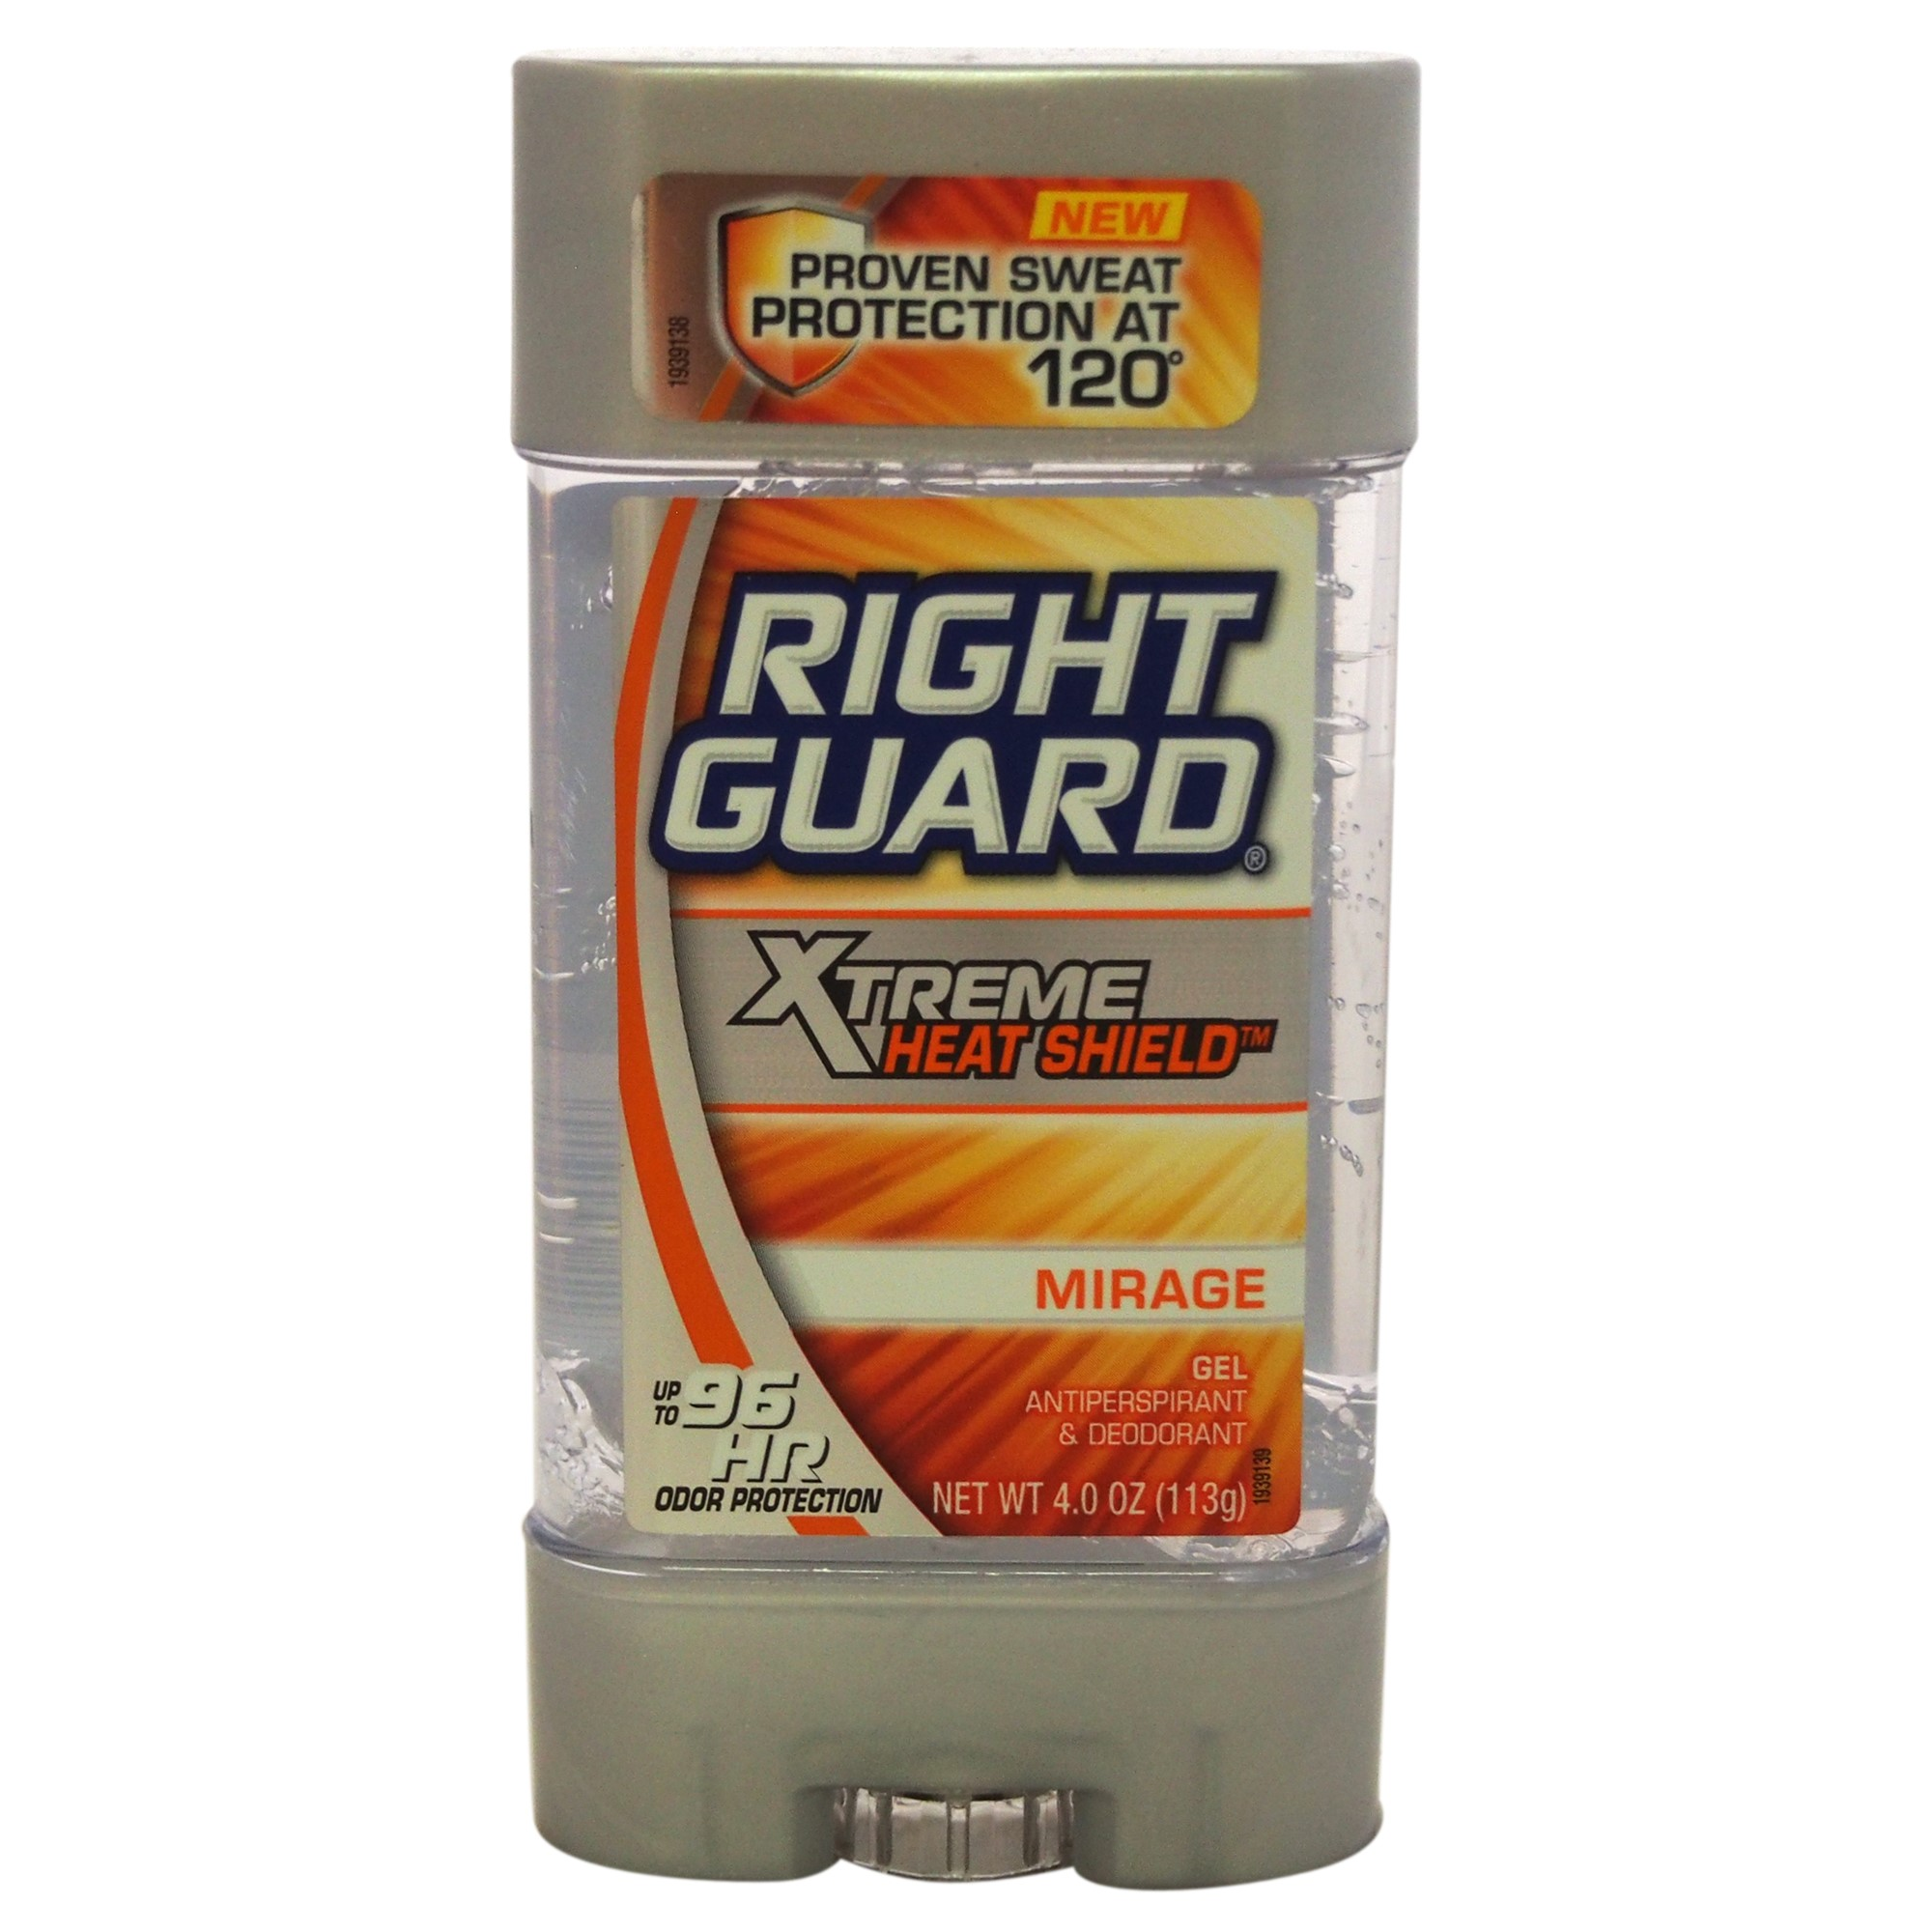 Right Guard Xtreme Heat Shield Gel Anti-Perspirant Deodorant, Mirage, 4 Oz